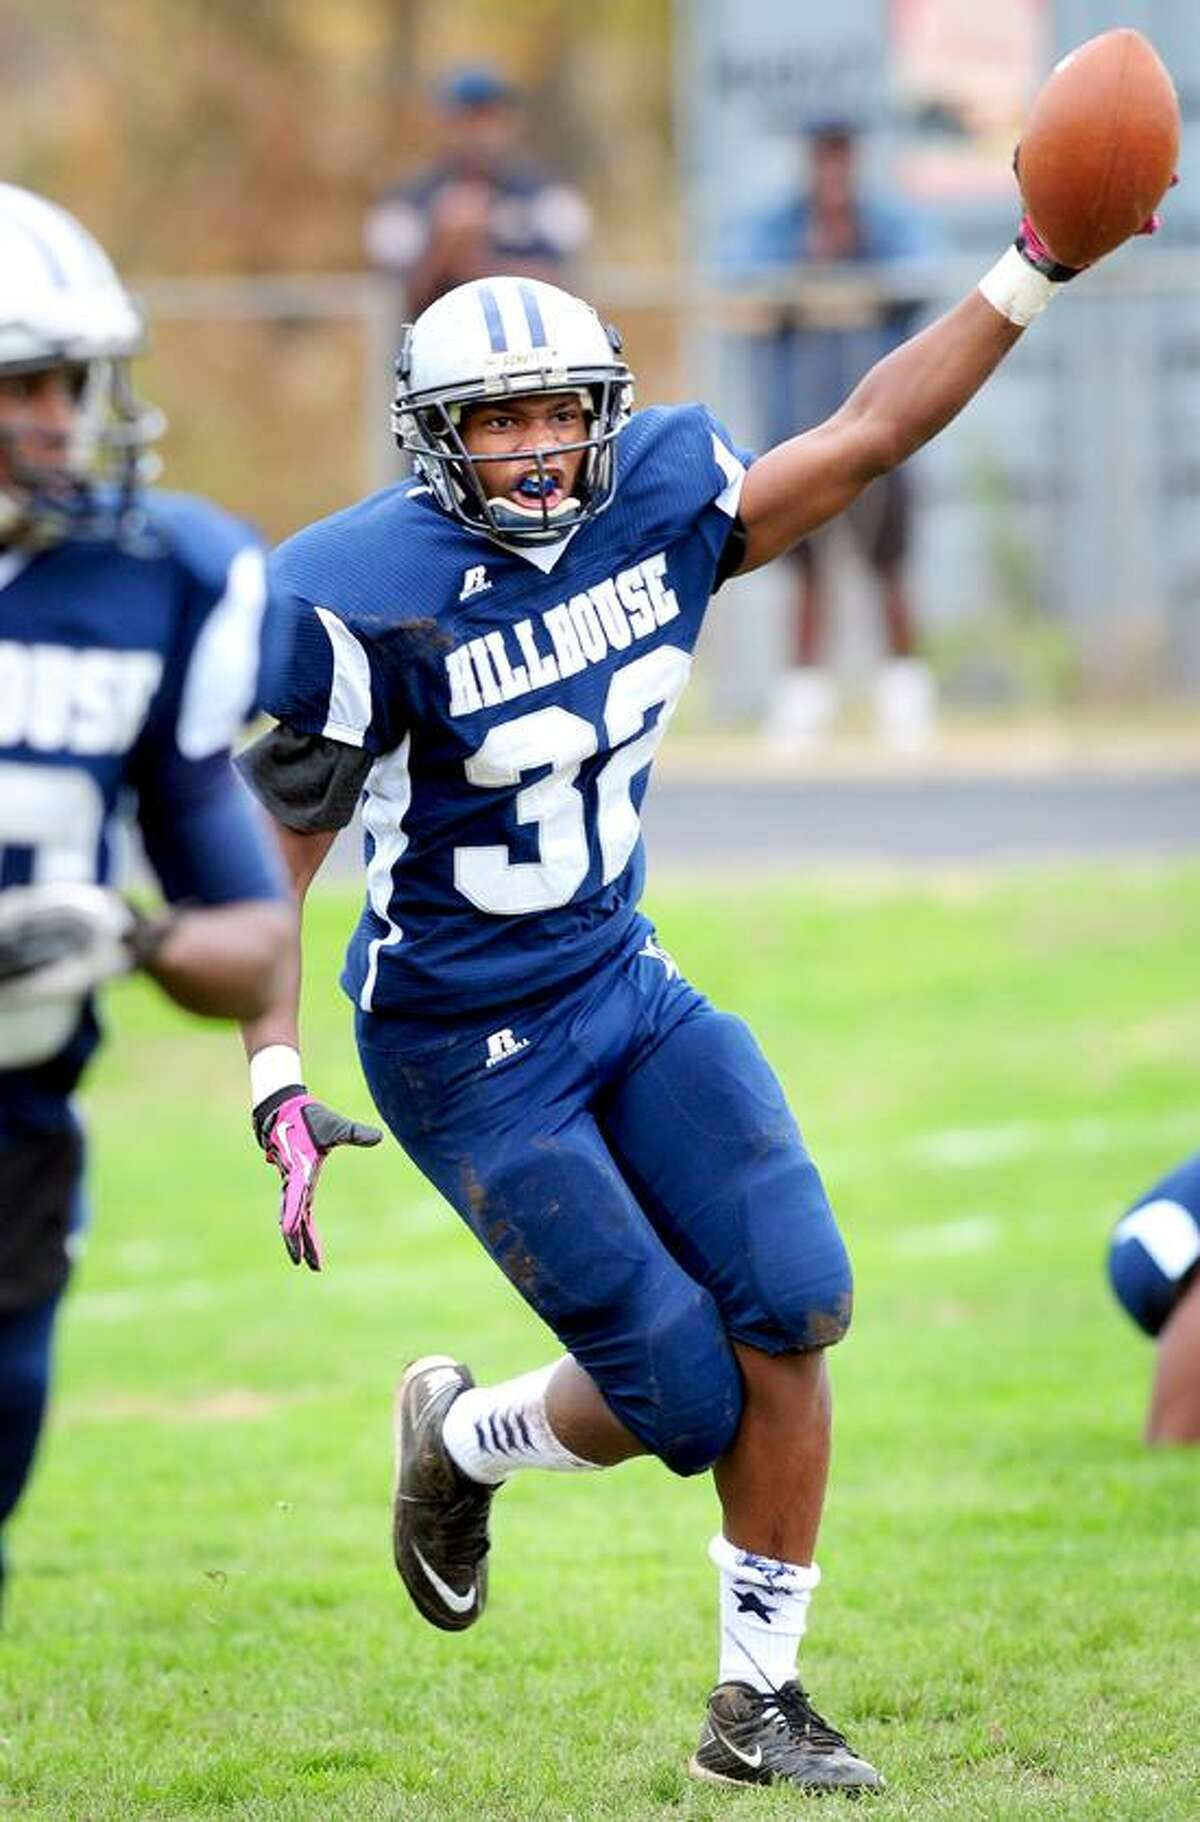 Hillhouse's William Barnes, pictured here celebrating after recovering a blocked punt for a touchdown against Xavier during the regular season, hopes to lead the Academics over Wilbur Cross and a berth in the Class M state playoffs. Photo by Arnold Gold/New Haven Register